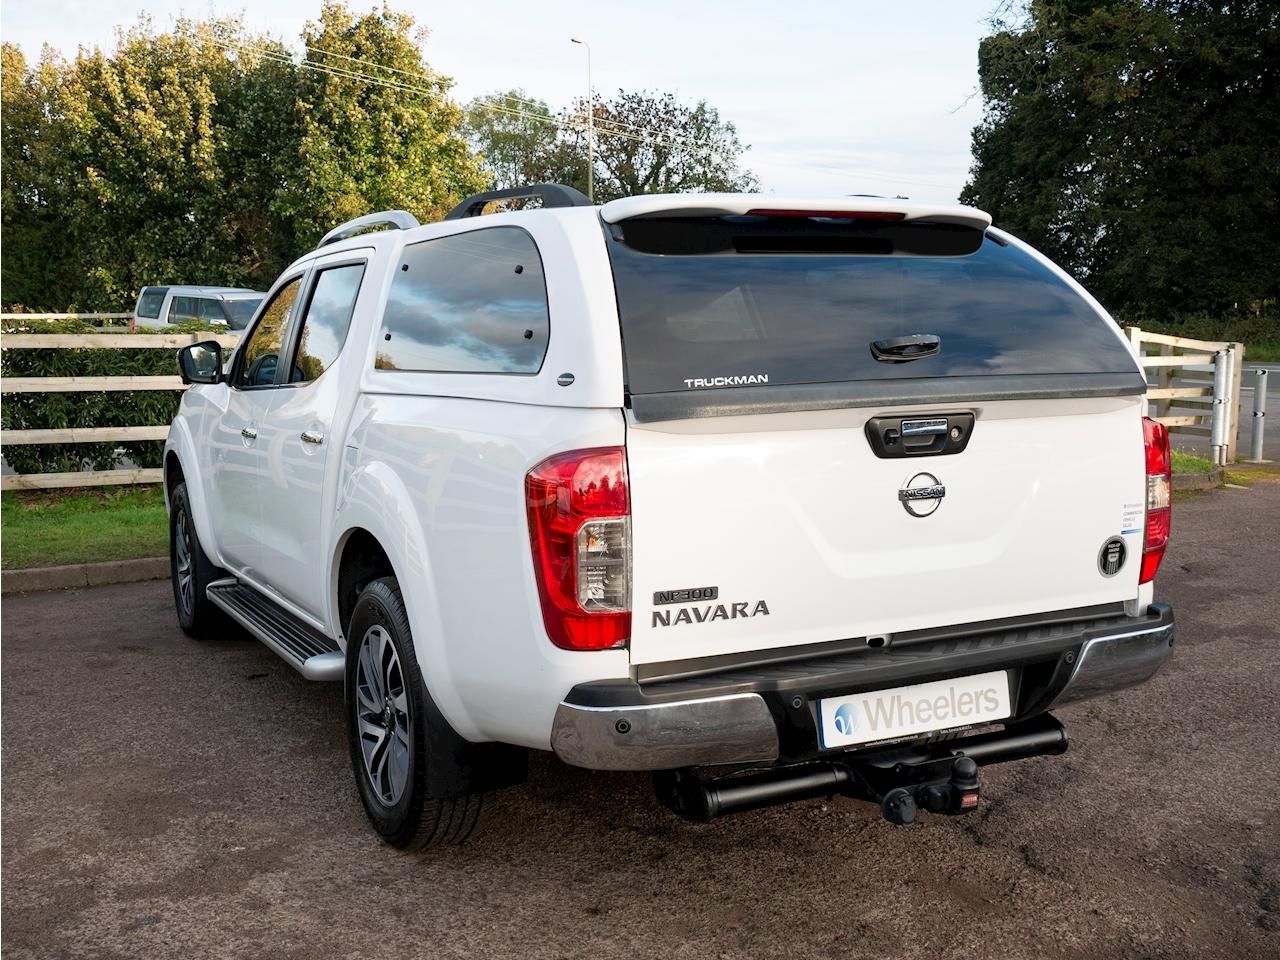 Nissan Np300 Navara Dci Tekna 4X4 Shr Dcb Pick-Up 2.3 Manual Diesel